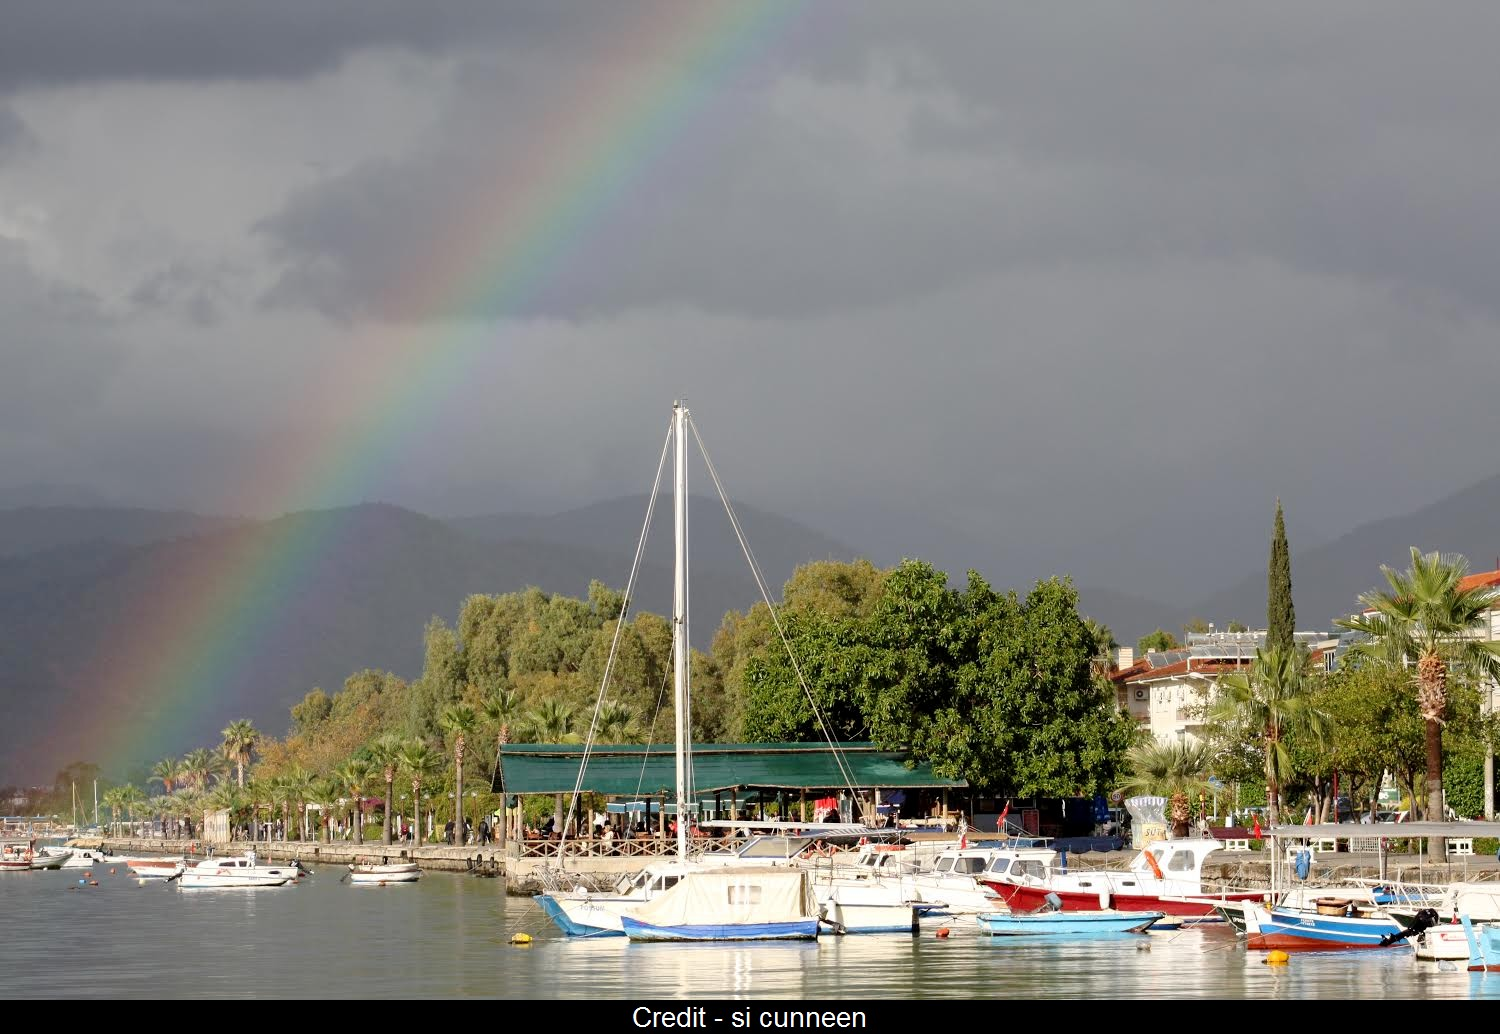 It was a wet week in Fethiye last week. Despite that the rainbows were just amazing!